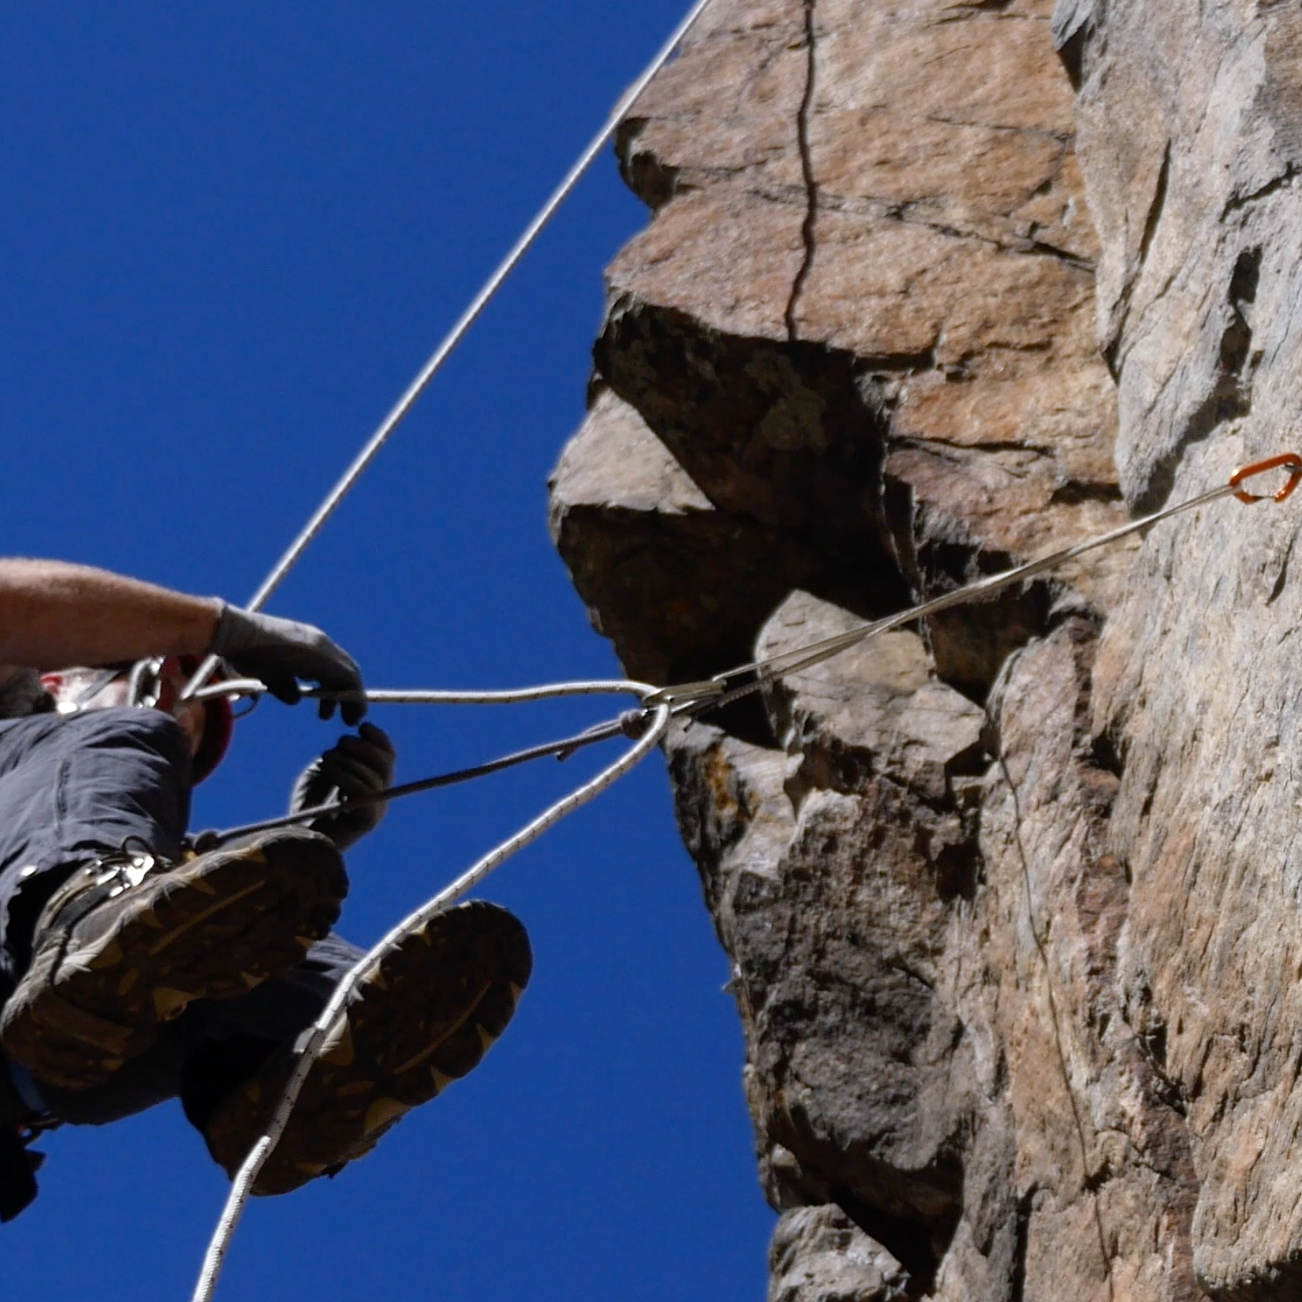 Deviations - Deviations are used in alpine rigging to direct the rope away from hazards such as edges, loose rock, and running water. Crossing them is usually straightforward, but there are a few tricks and techniques that will help.